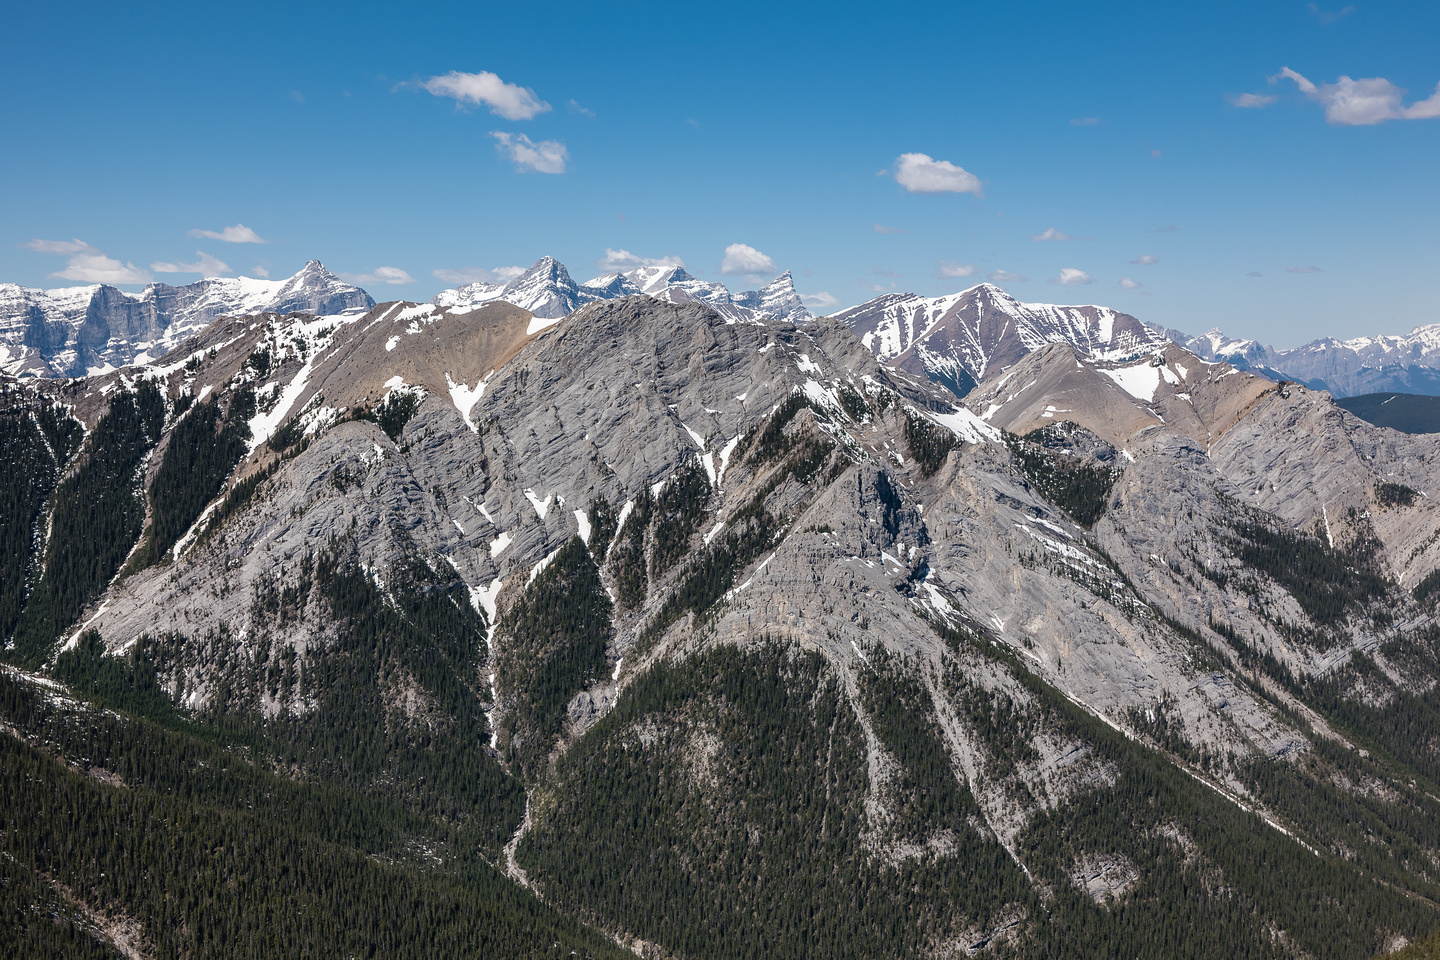 Looking over Wasootch Peak towards Mount Collembola and Lougheed at distant center.